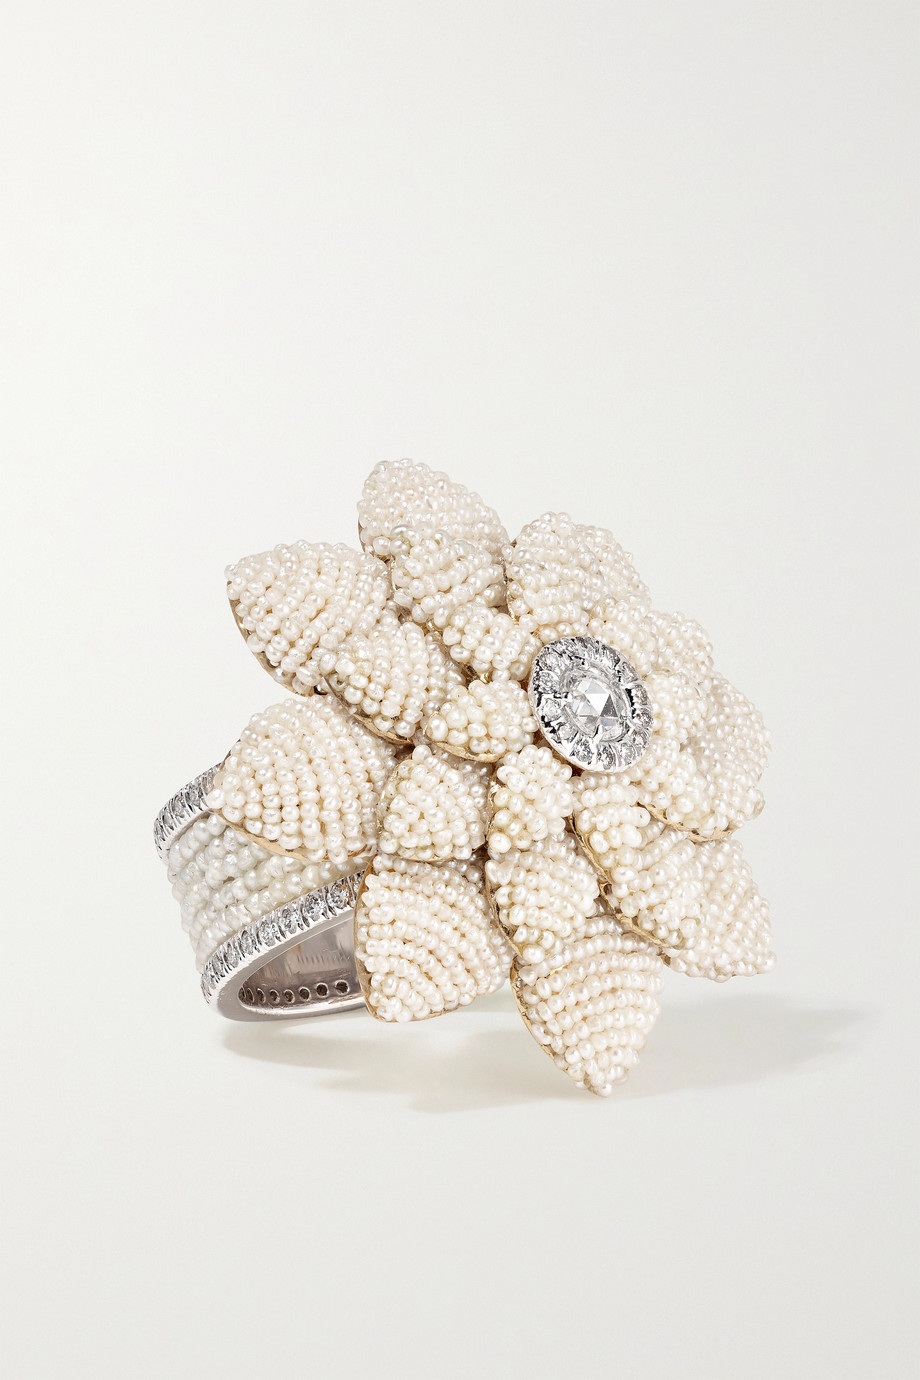 Bina Goenka 18-karat yellow and white gold, pearl and diamond ring